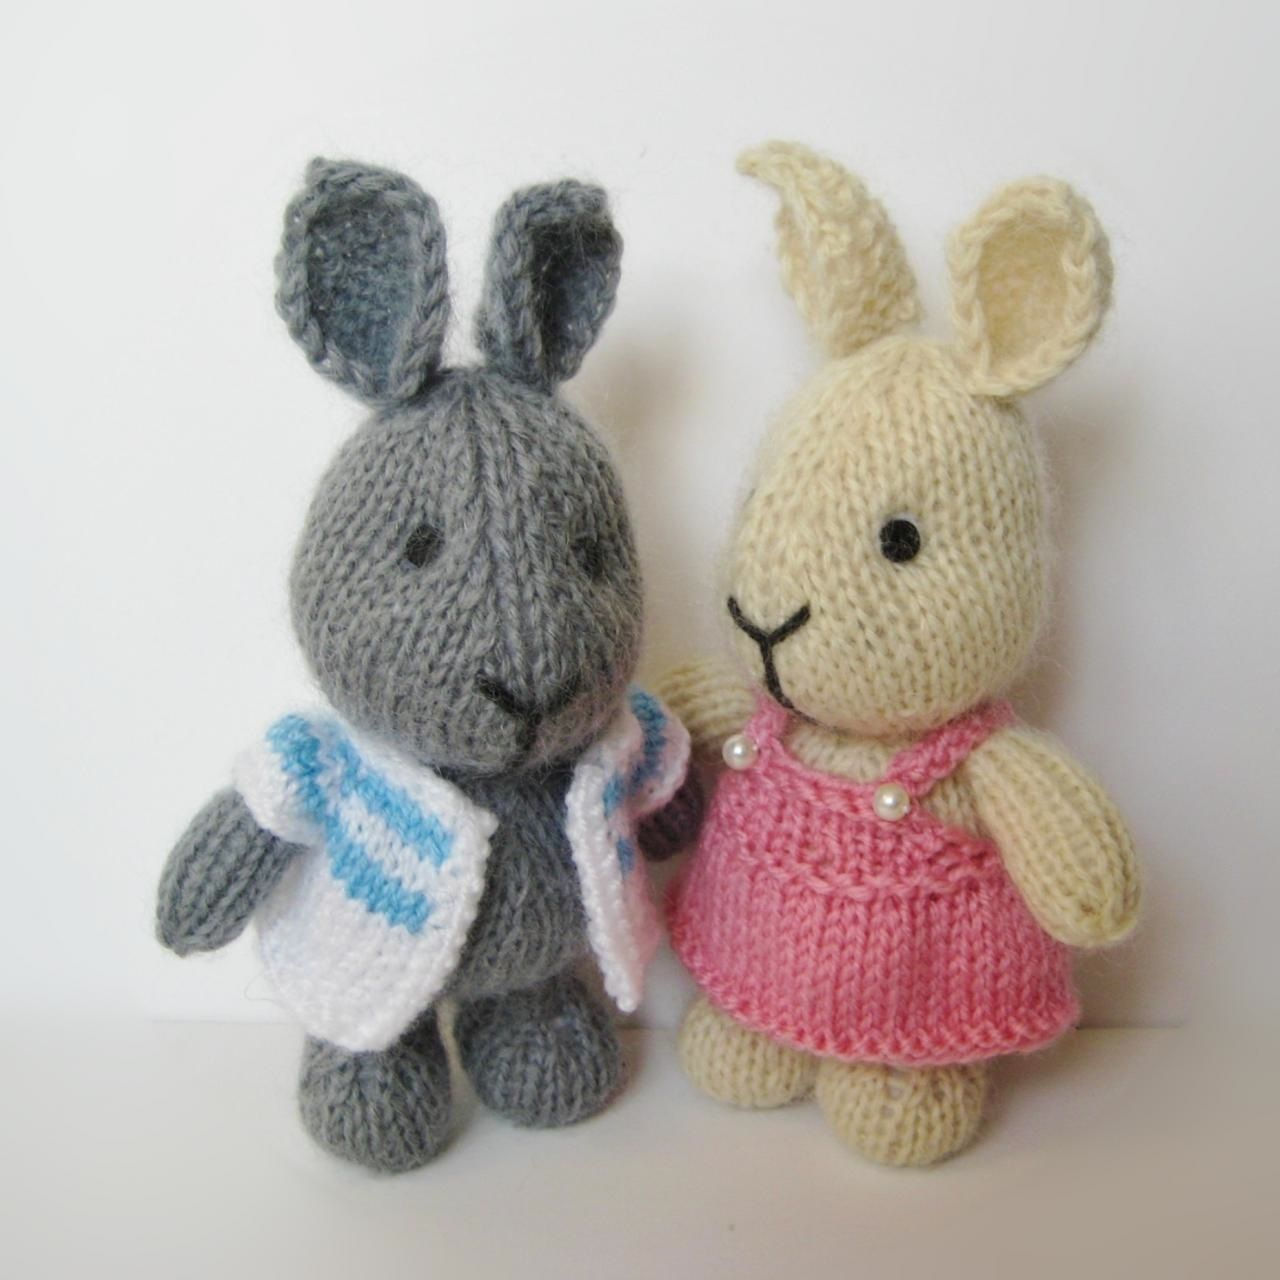 Cute toys images   Knitted Toys for Kids  Toy Knit animals and Crochet